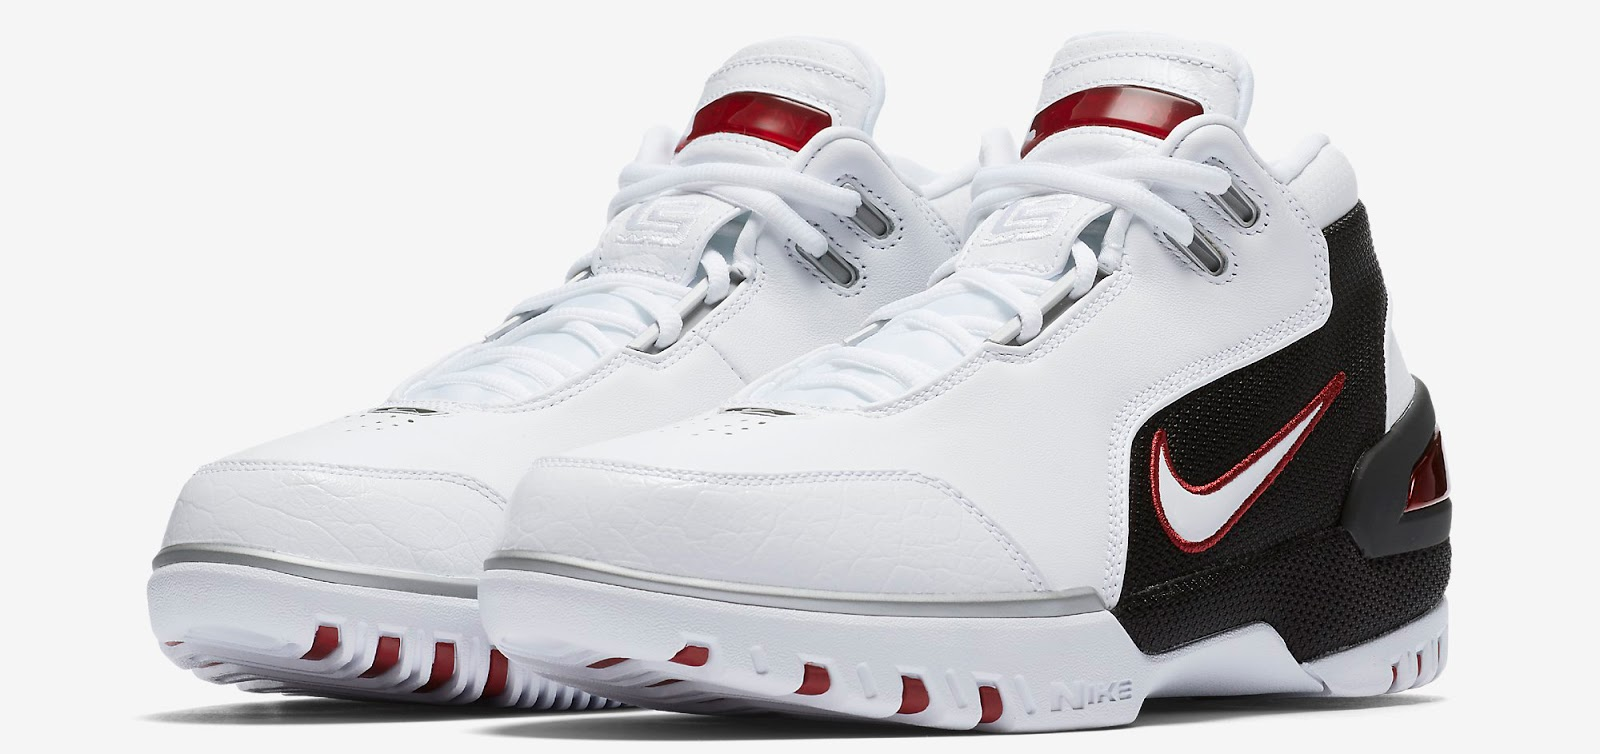 92953954df28eb The third Nike Air Zoom Generation retro release of 2017 comes in the form  of the first general release colorway of LeBron James  debut signature  sneaker ...